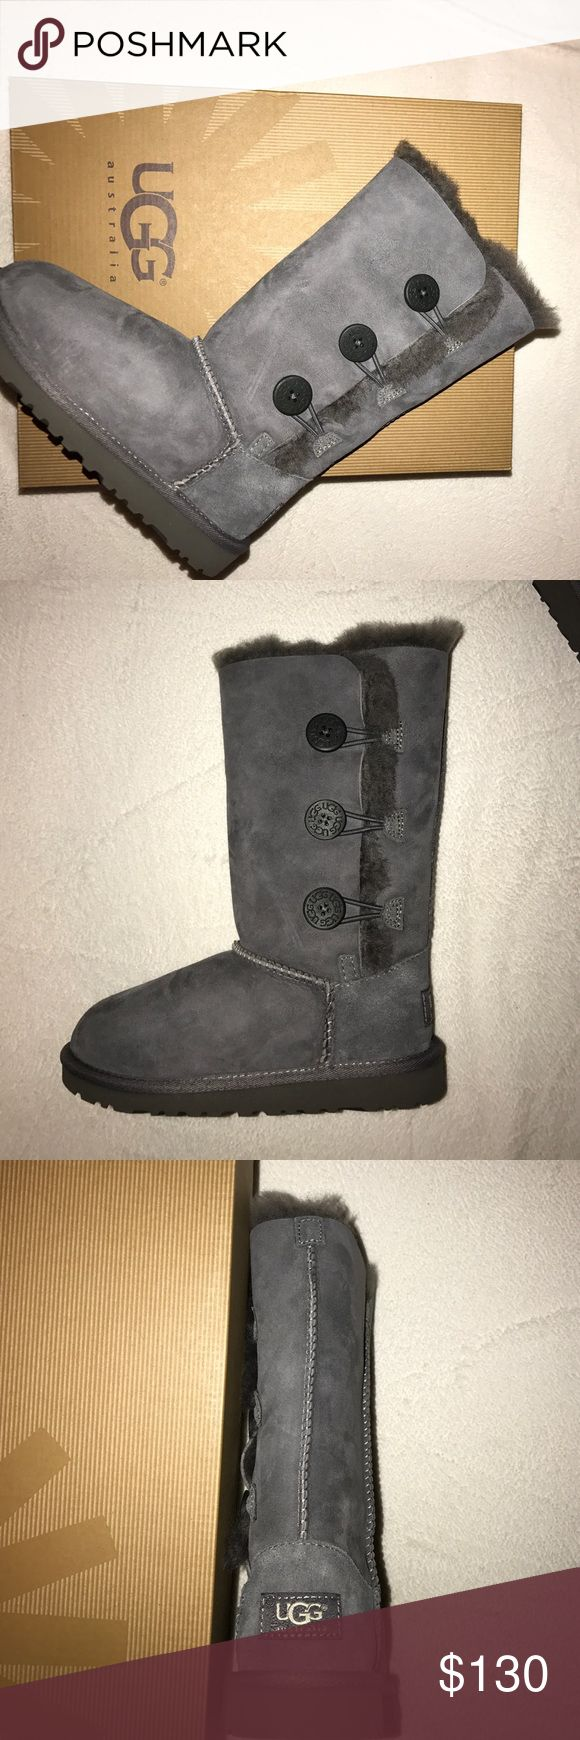 Adorable girls ugg boots Brand new in box!! Never worn!! Grey bailey button triple ugg boots. Super cute and warm! UGG Shoes Boots